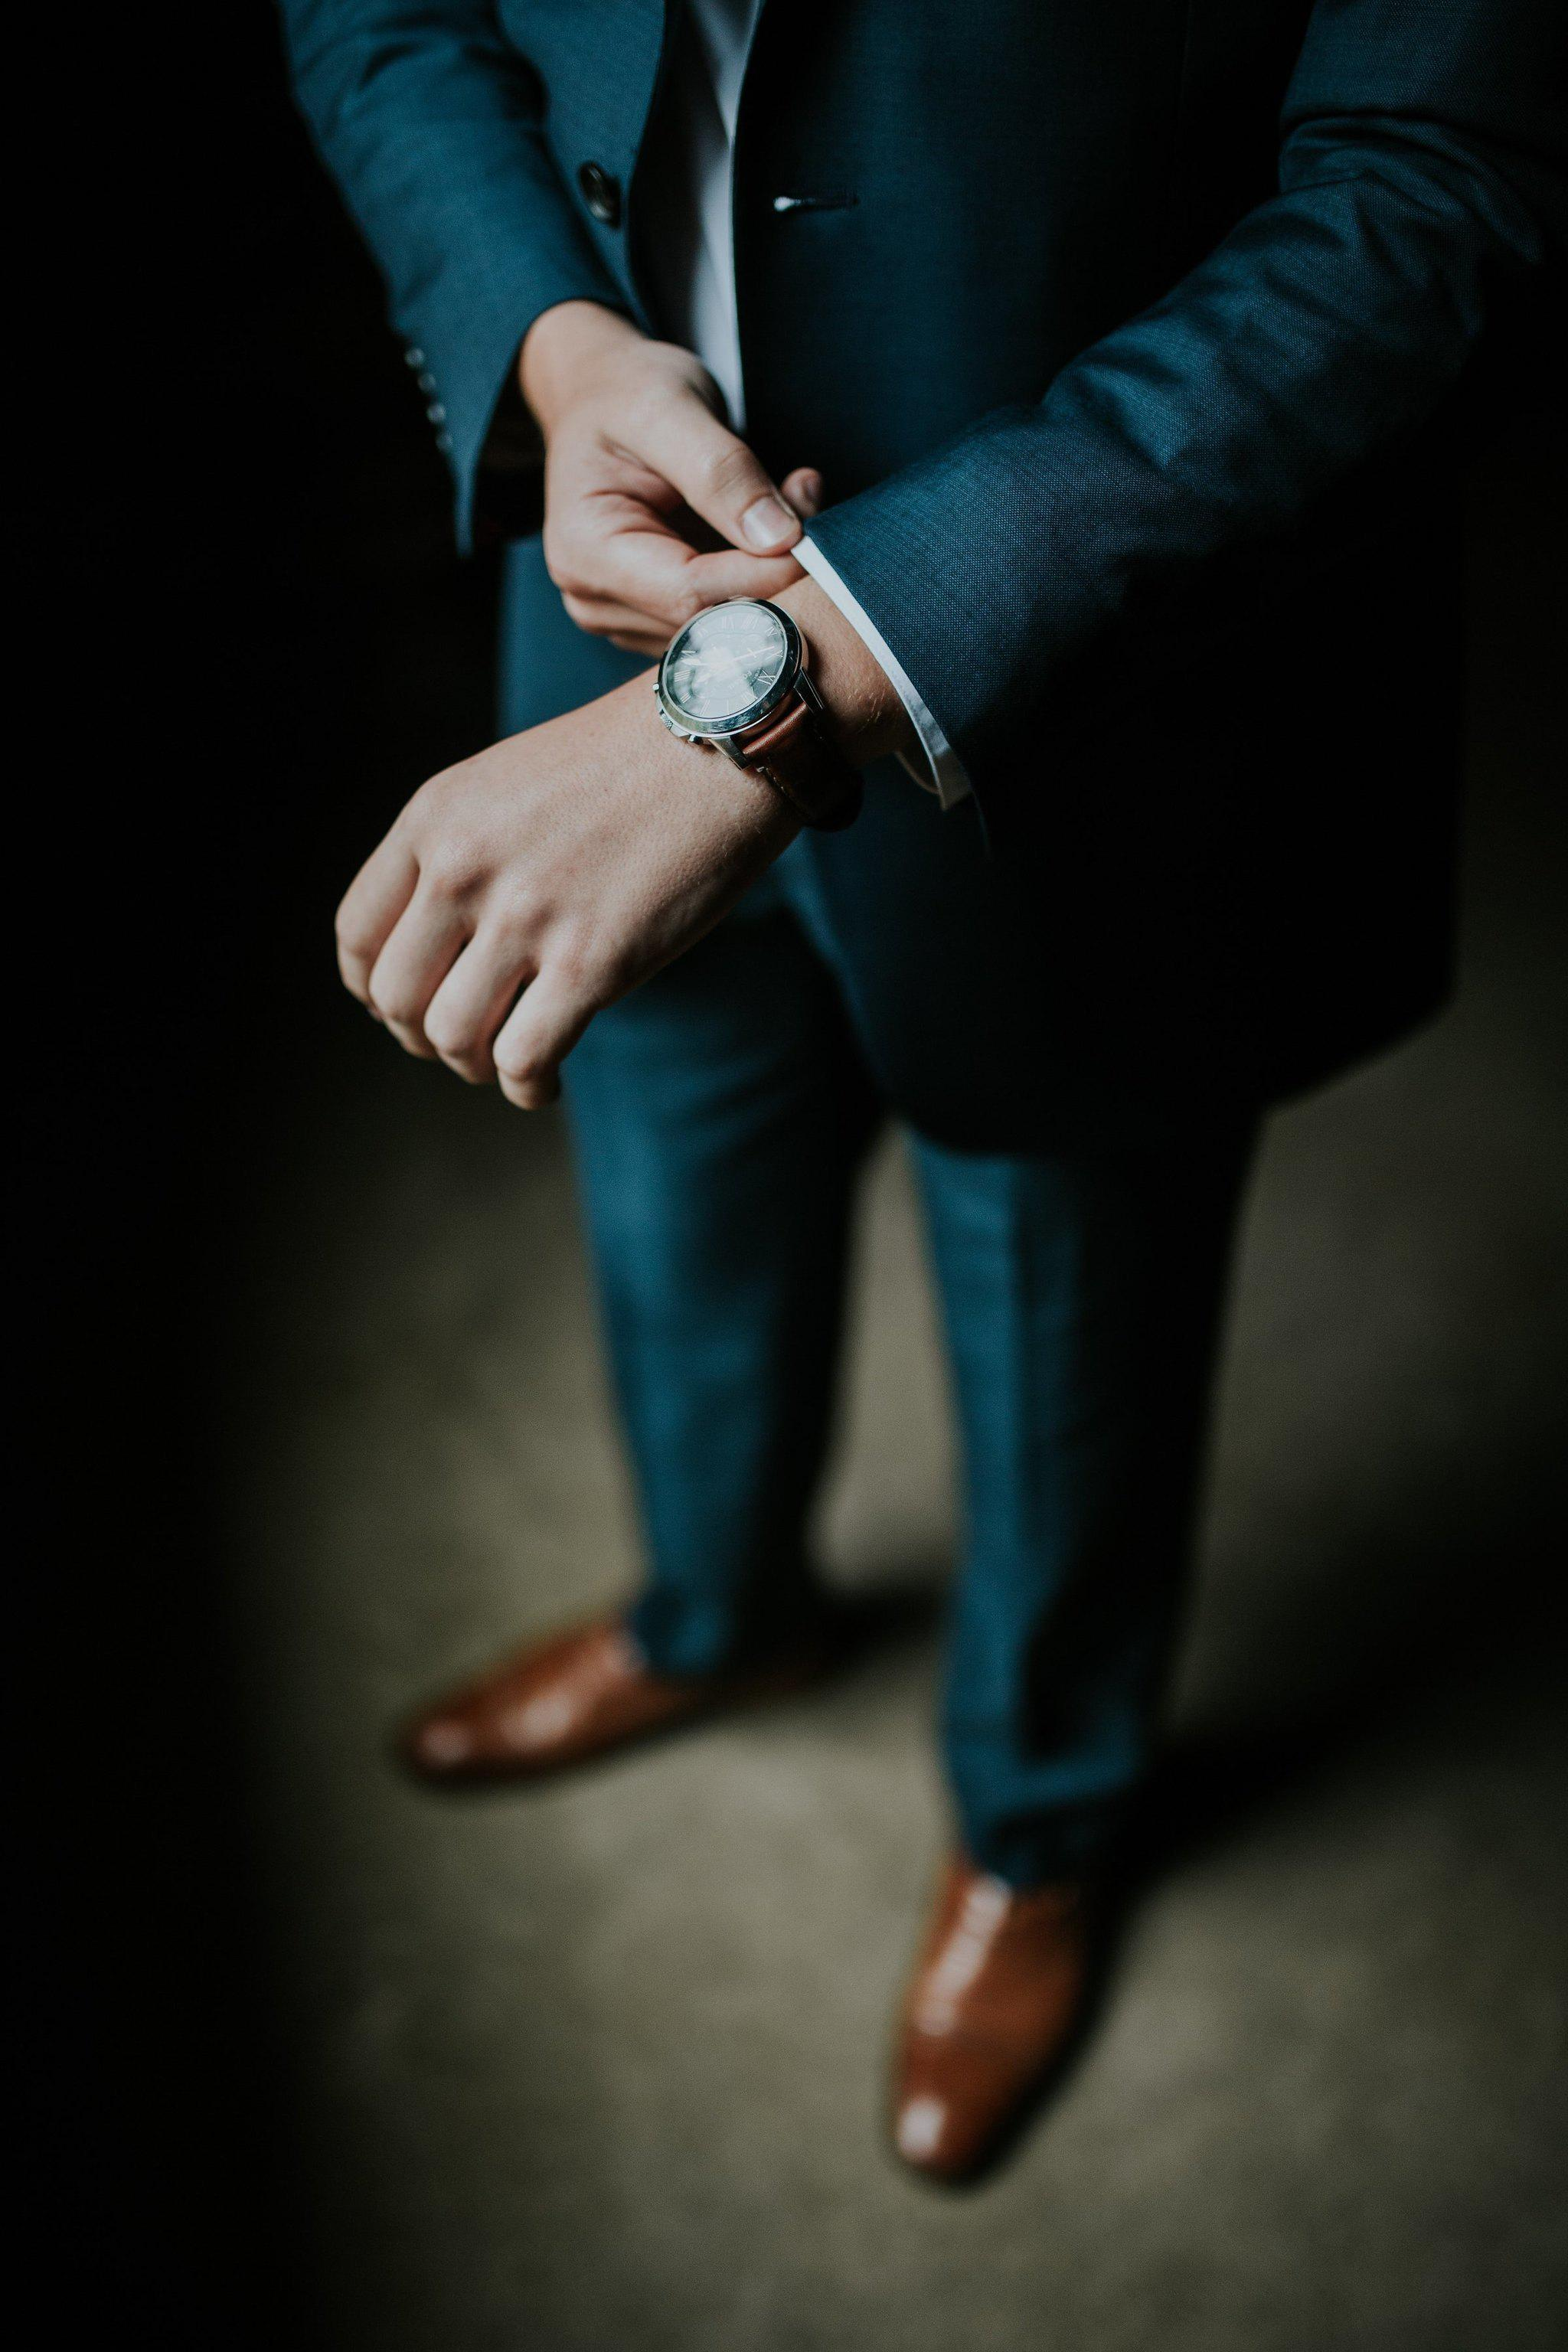 Dress to Impress: 5 Best Men's Watches for Office Wear